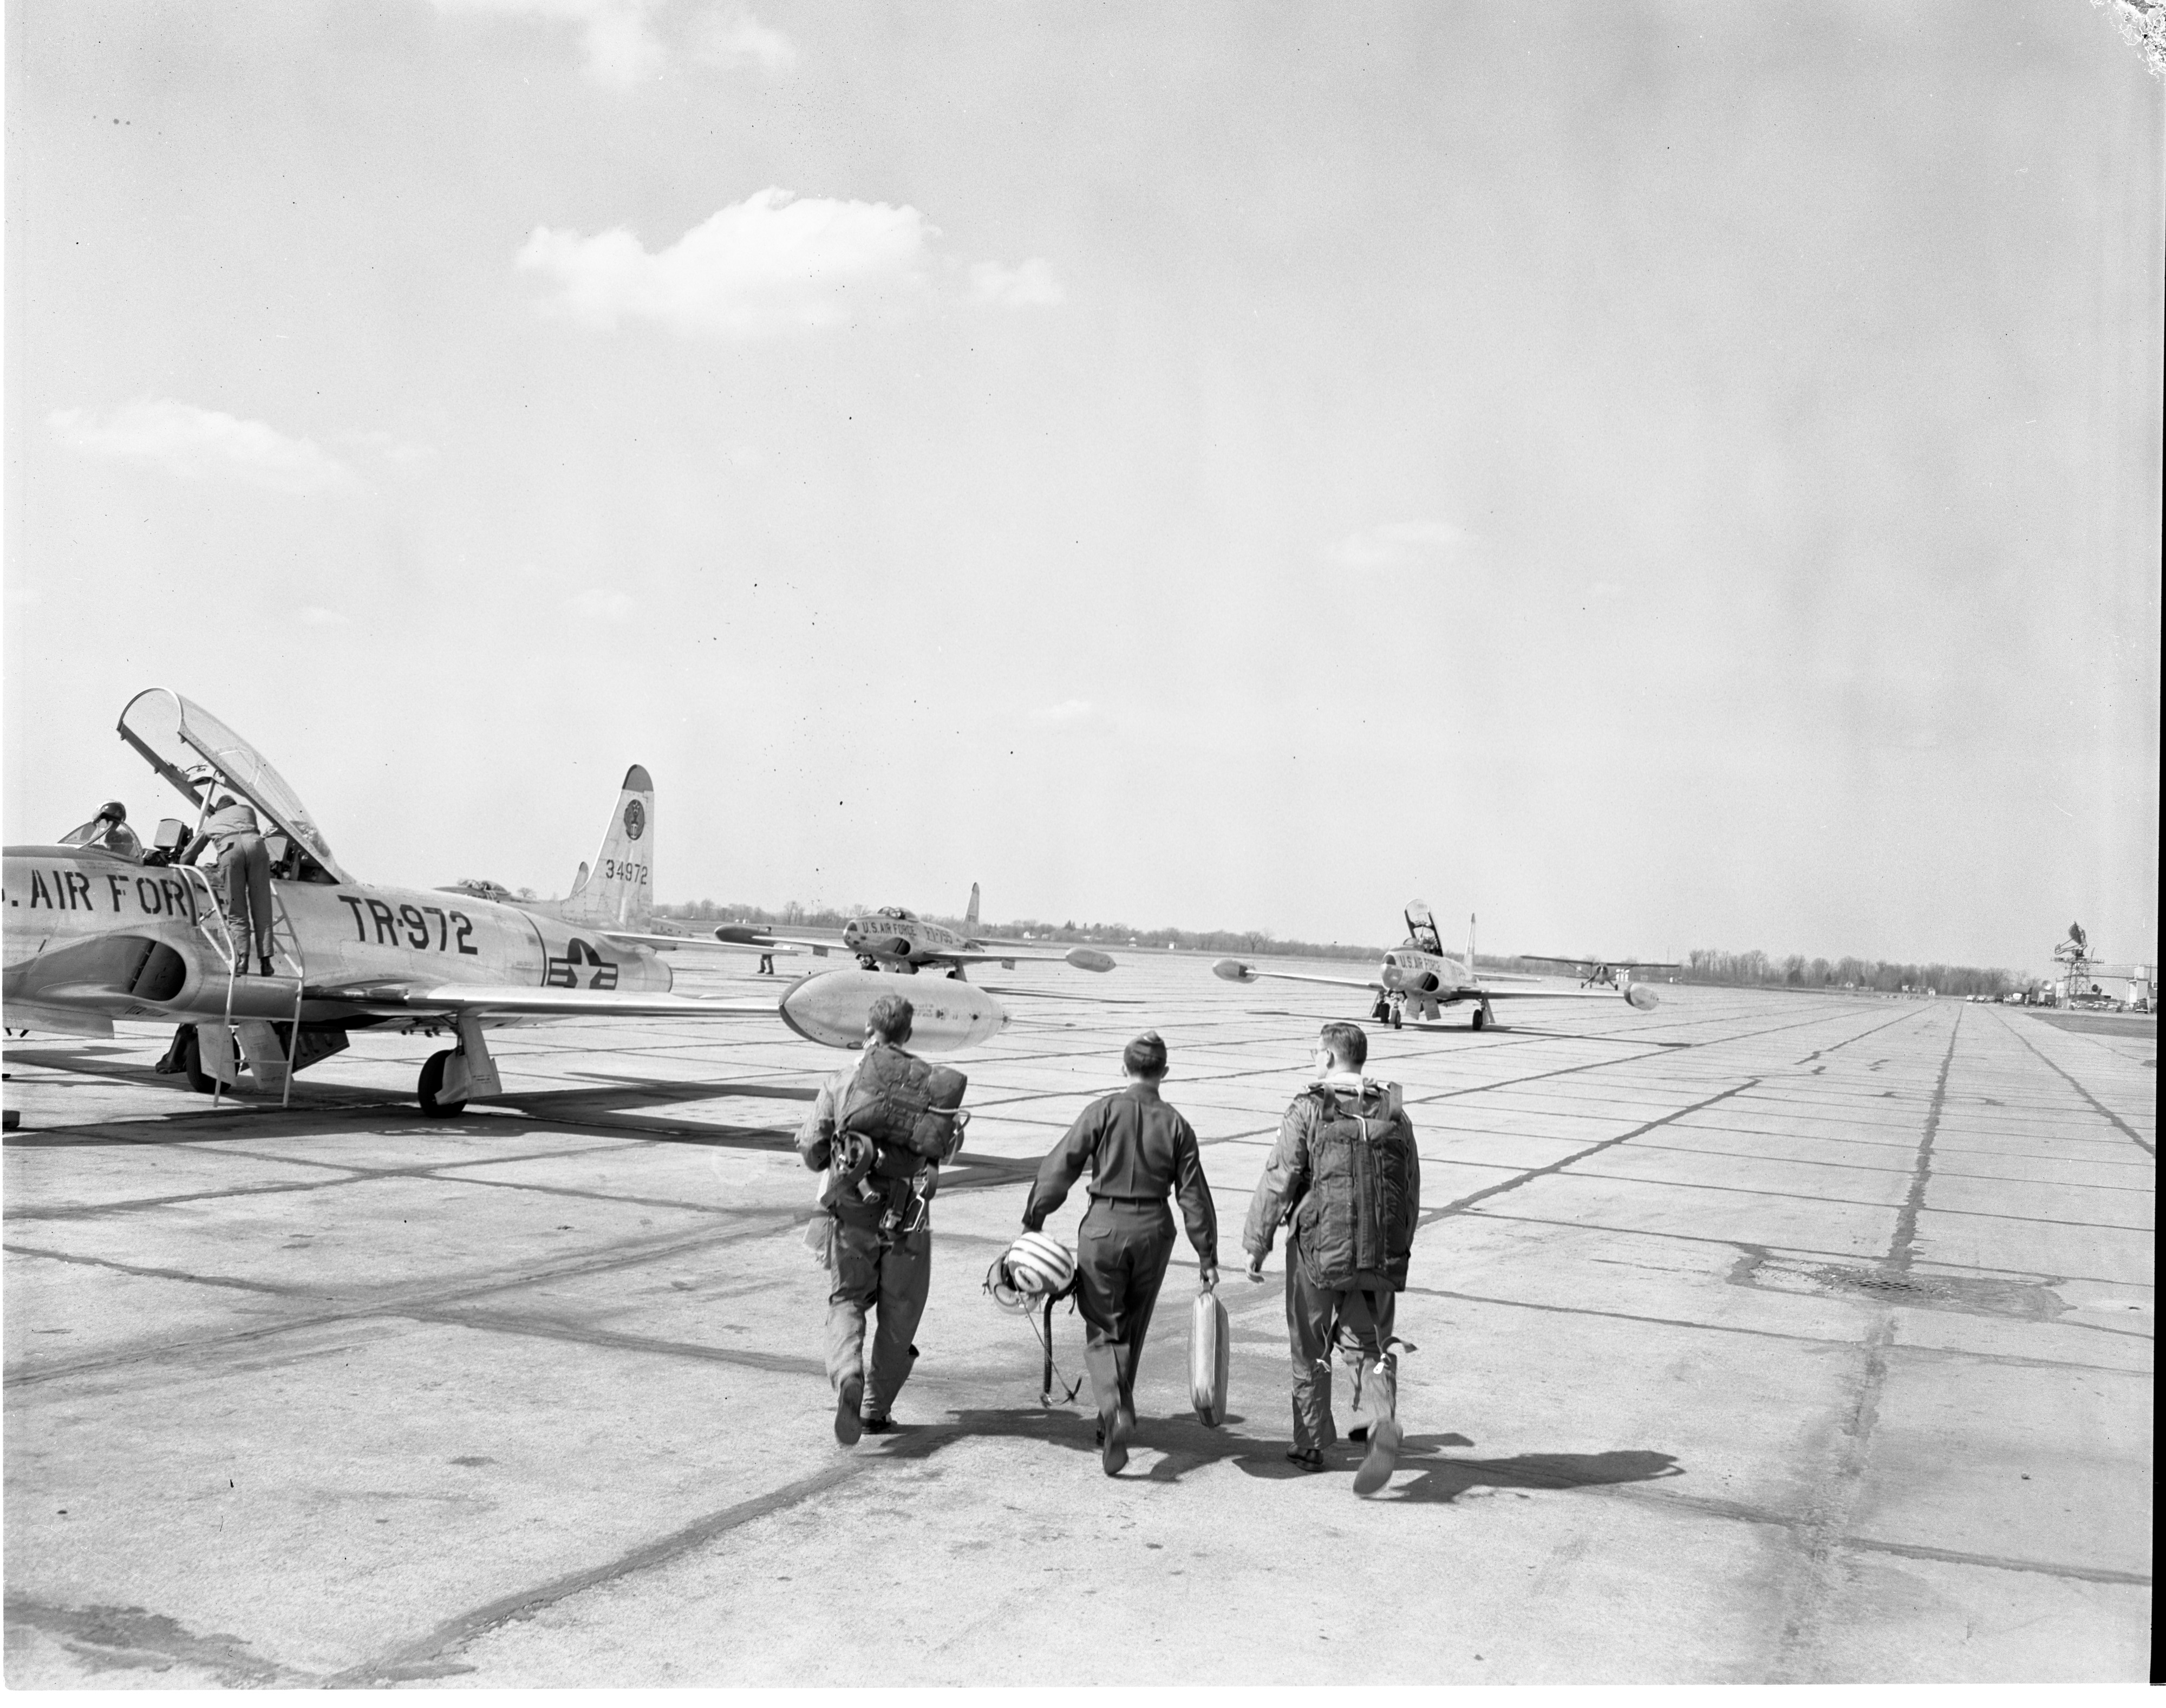 Air Force Lts. Louis G. Marlow & Al Siff Escort Ann Arbor News Reporter Dick Kerr To His Flight At Willow Run Airport, April 1956 image